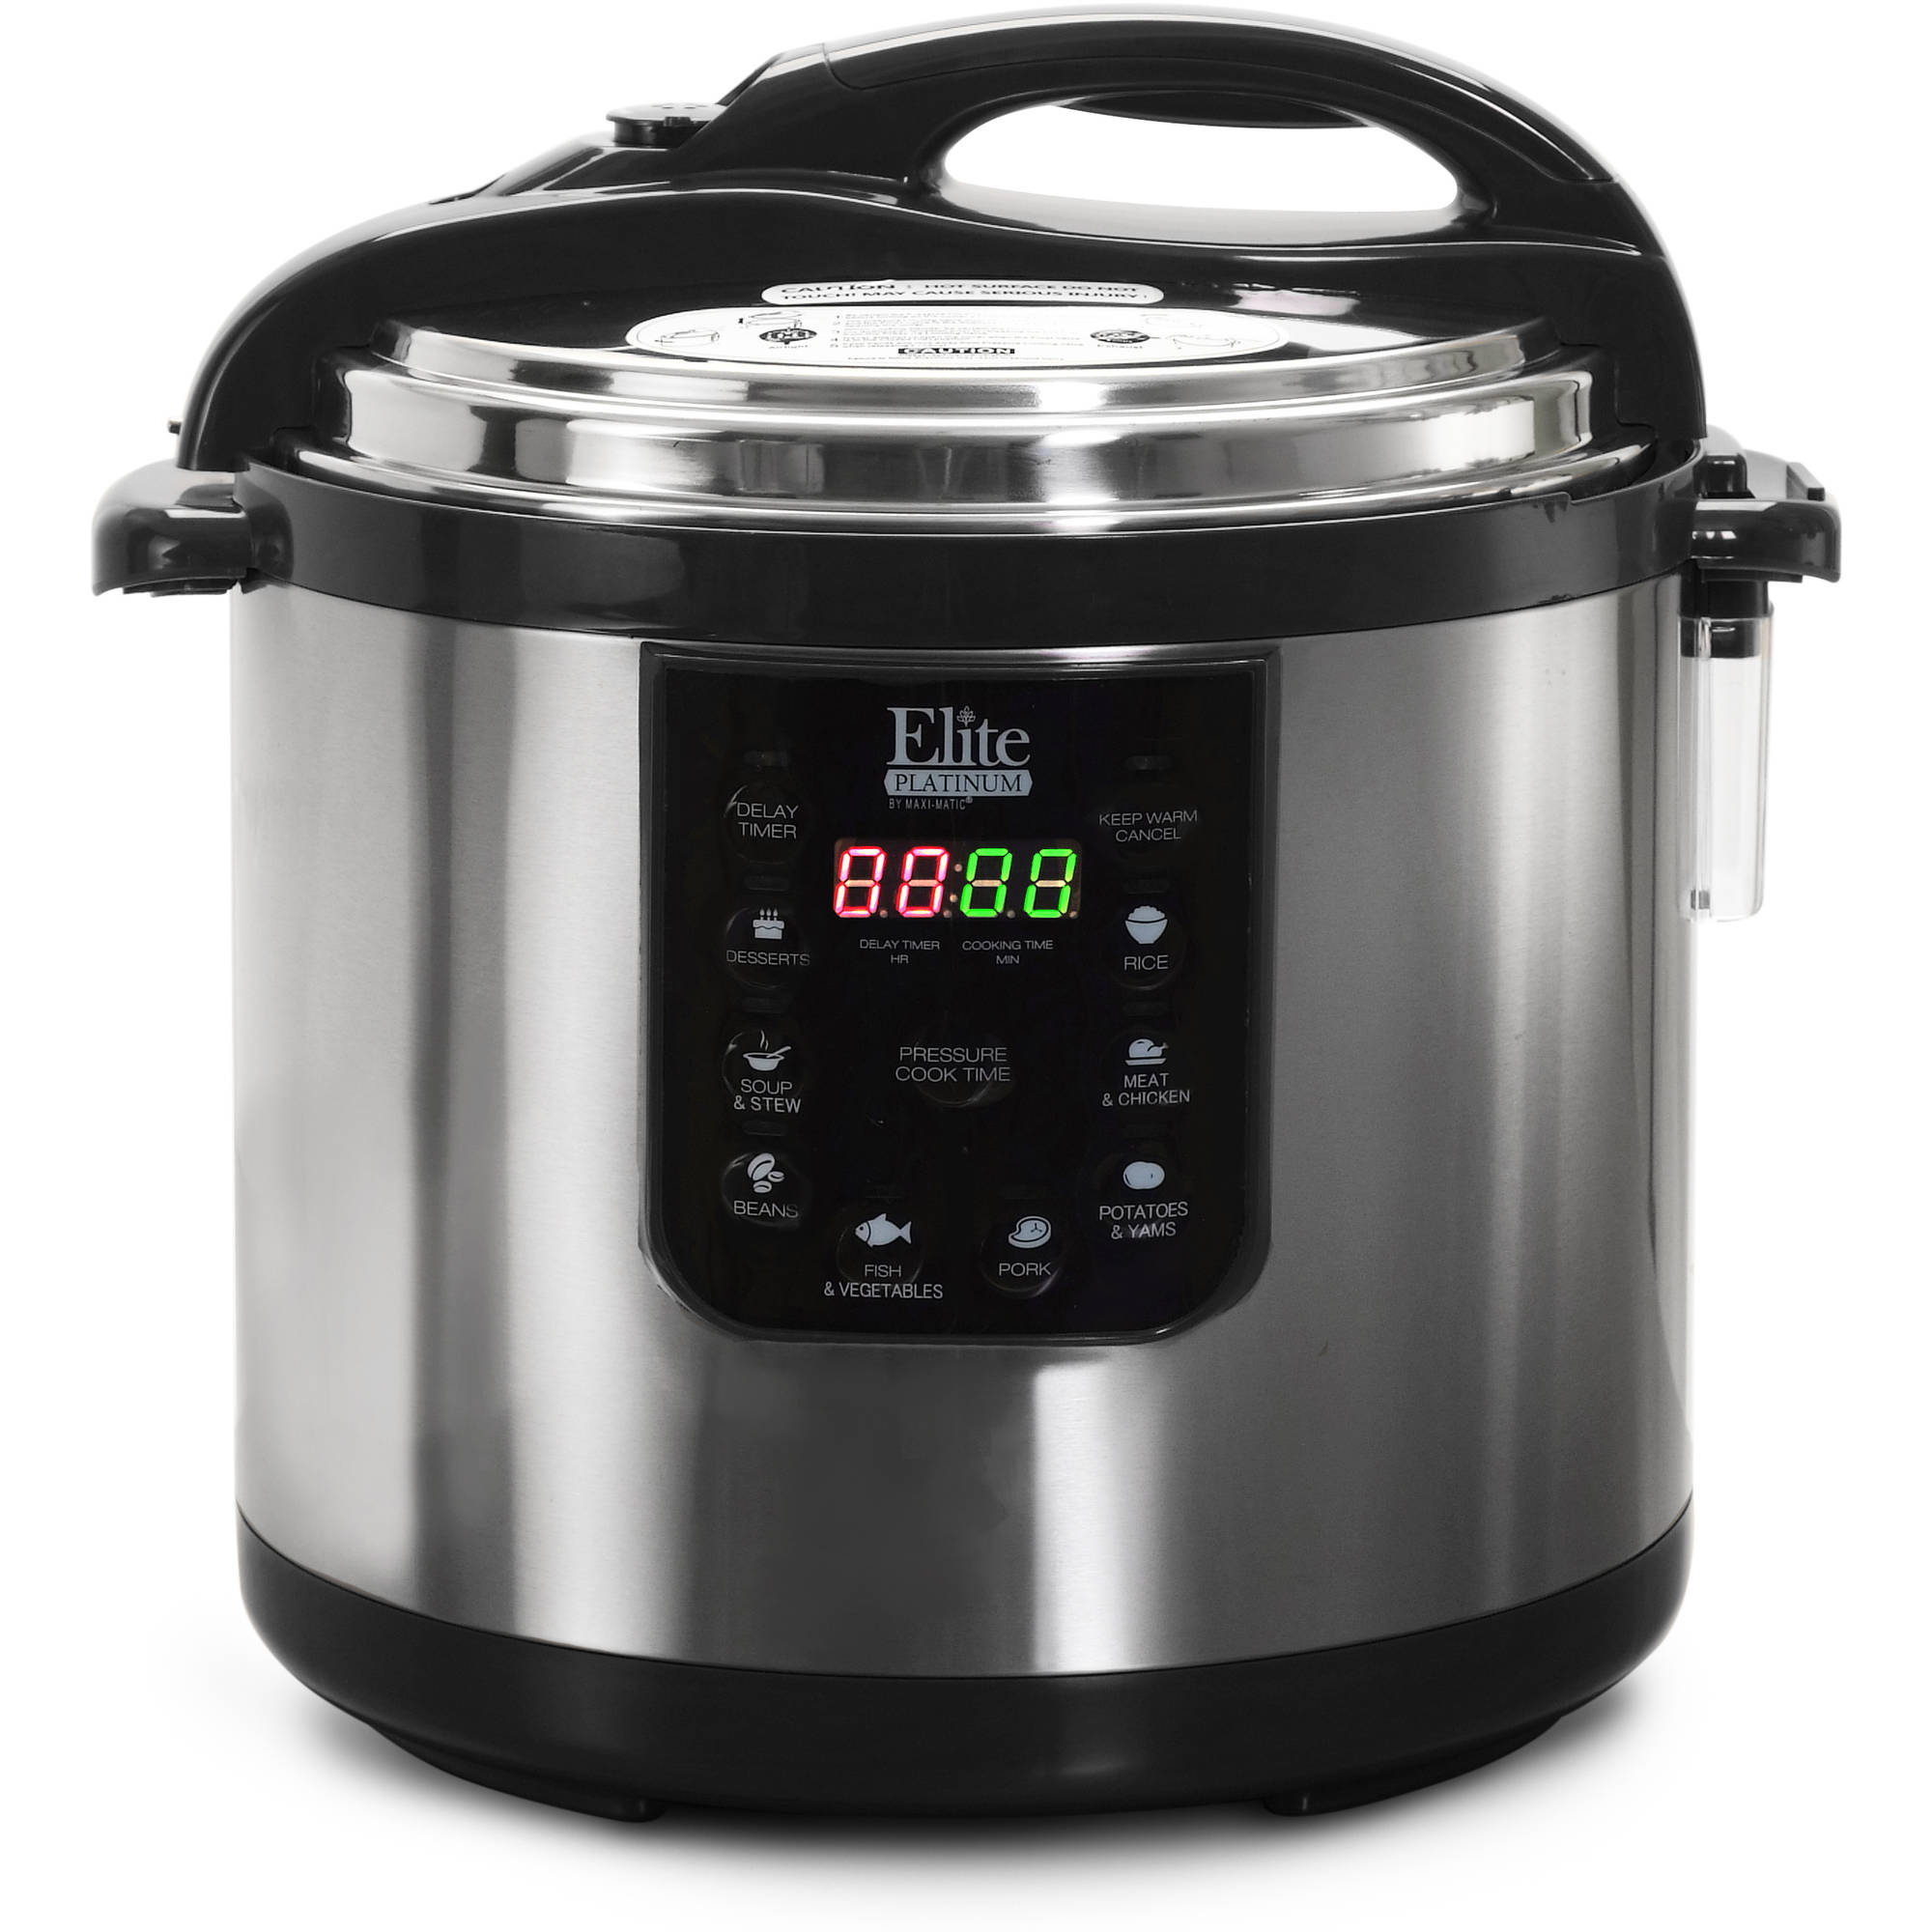 Elite Platinum EPC-1013 10 Quart Electric Pressure Cooker, Stainless Steel